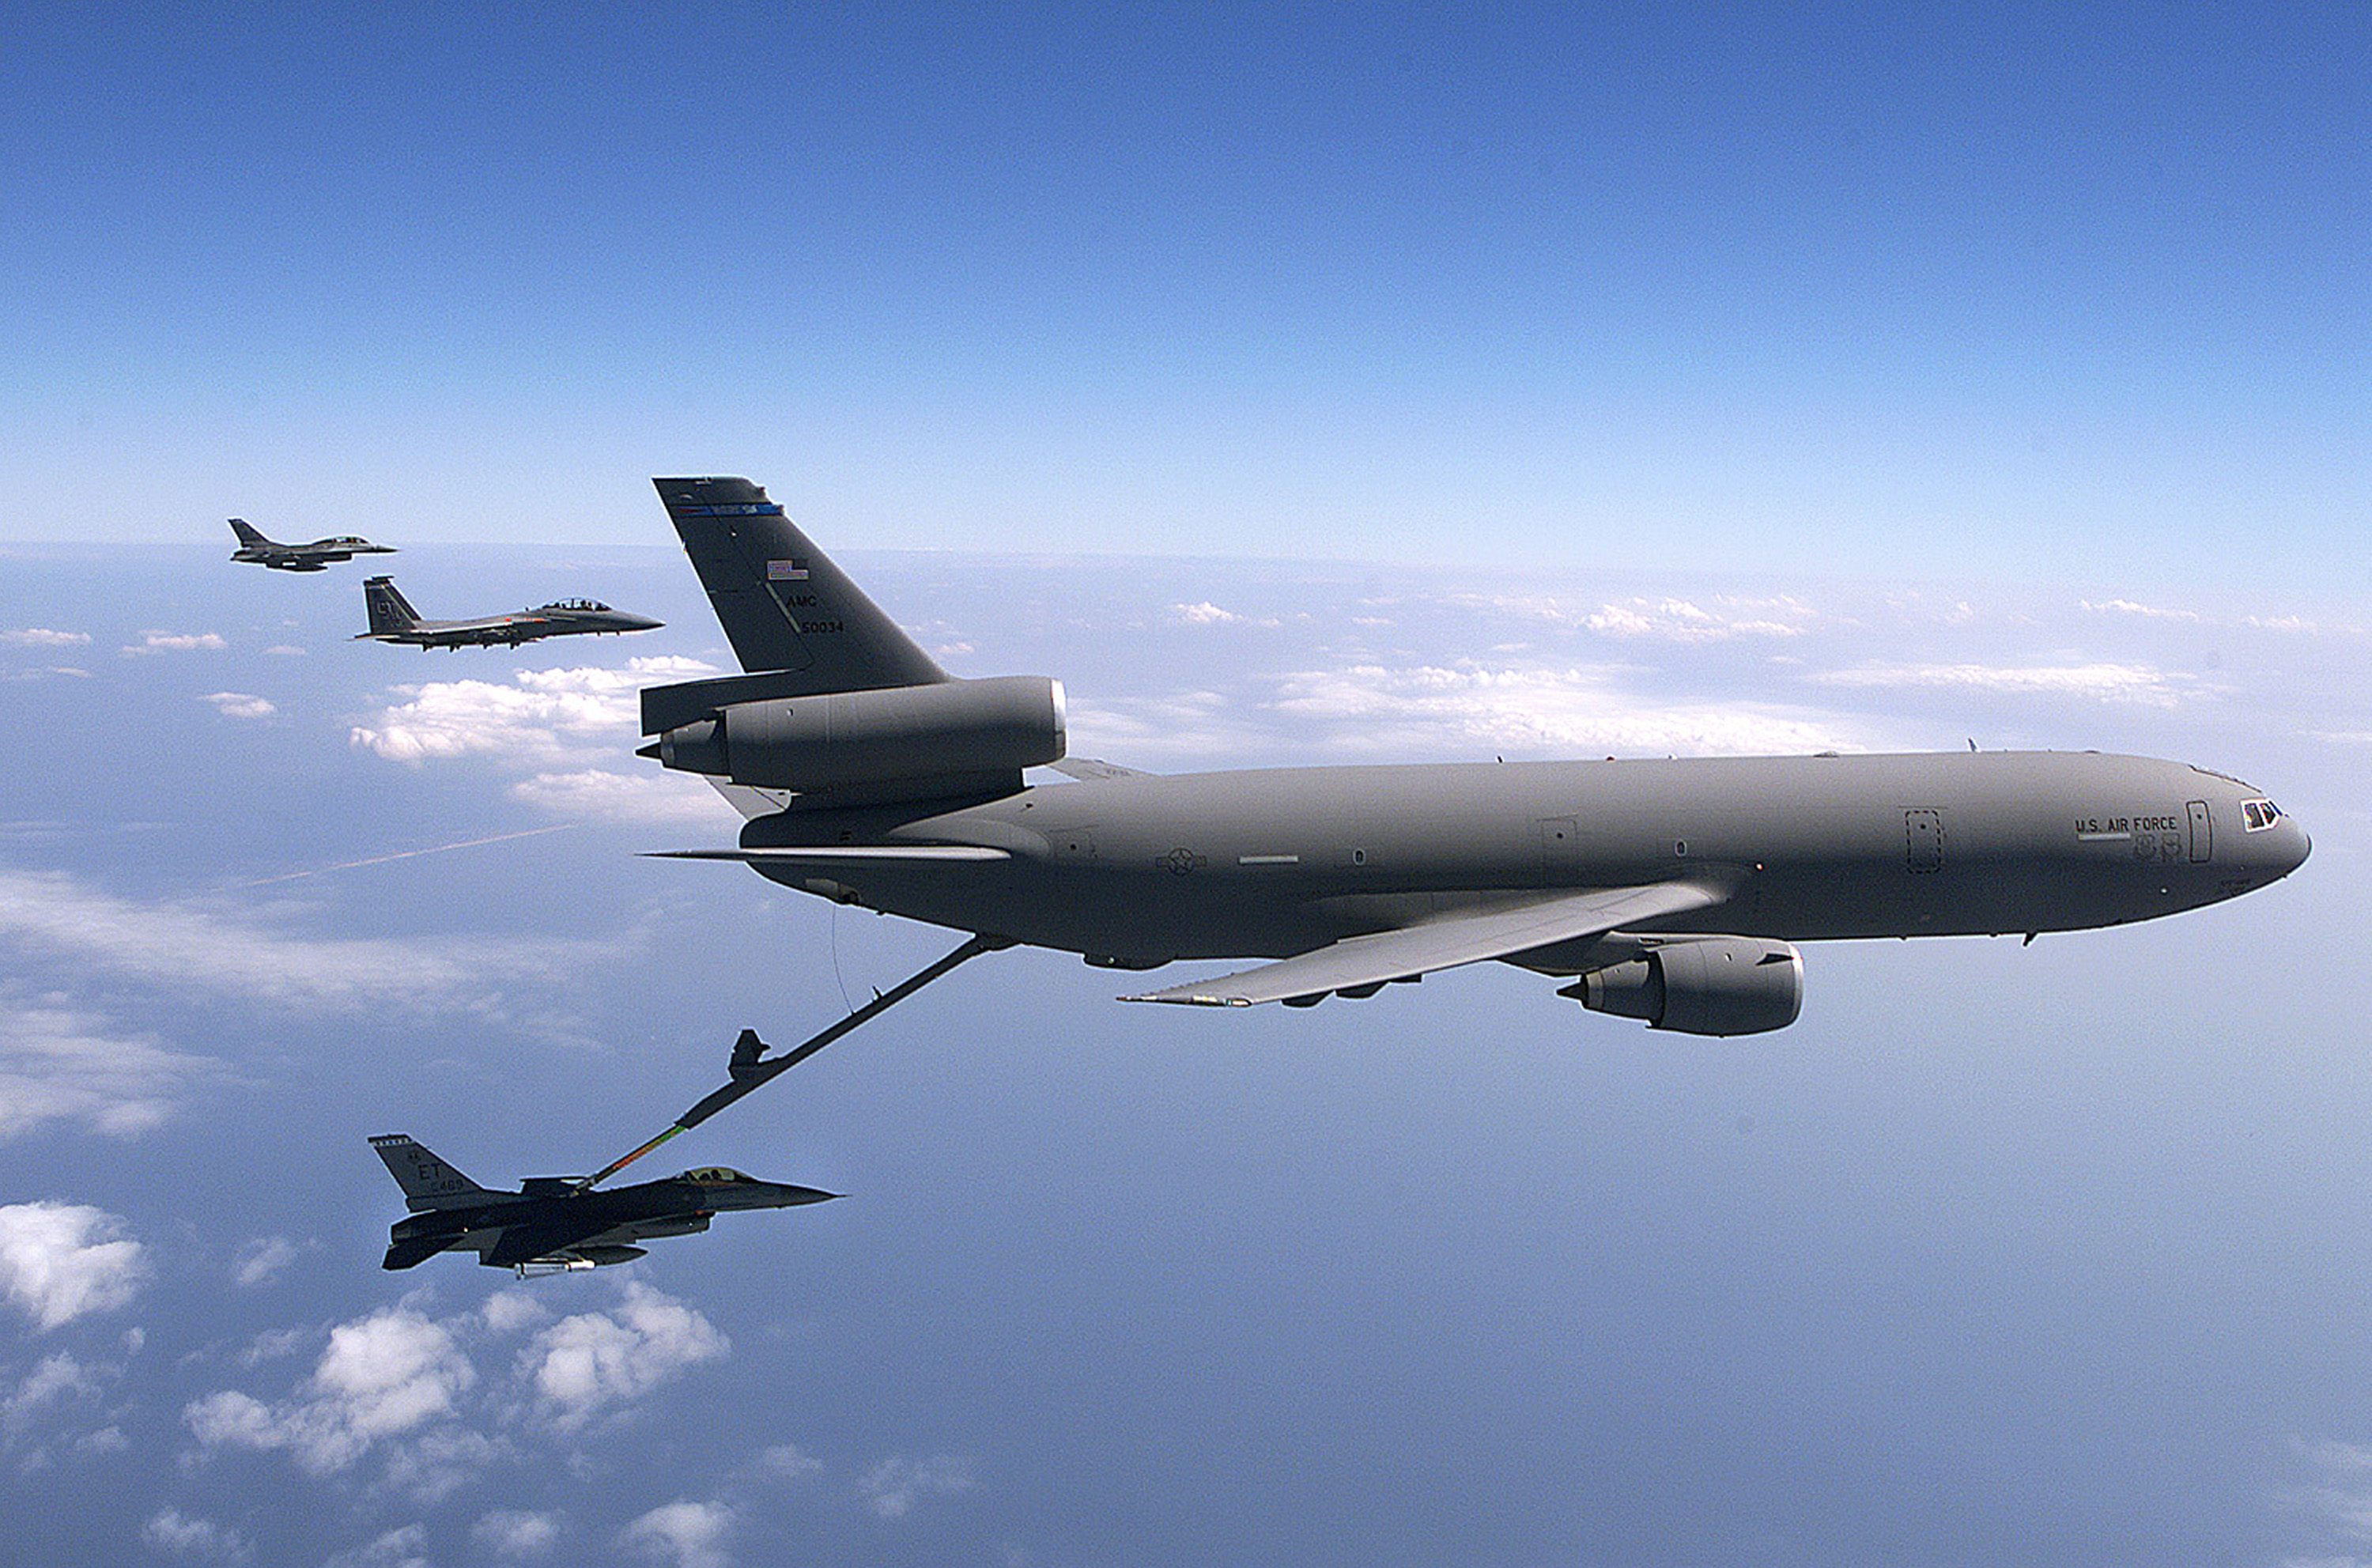 Suggest Air force refueling aircraft apologise, can